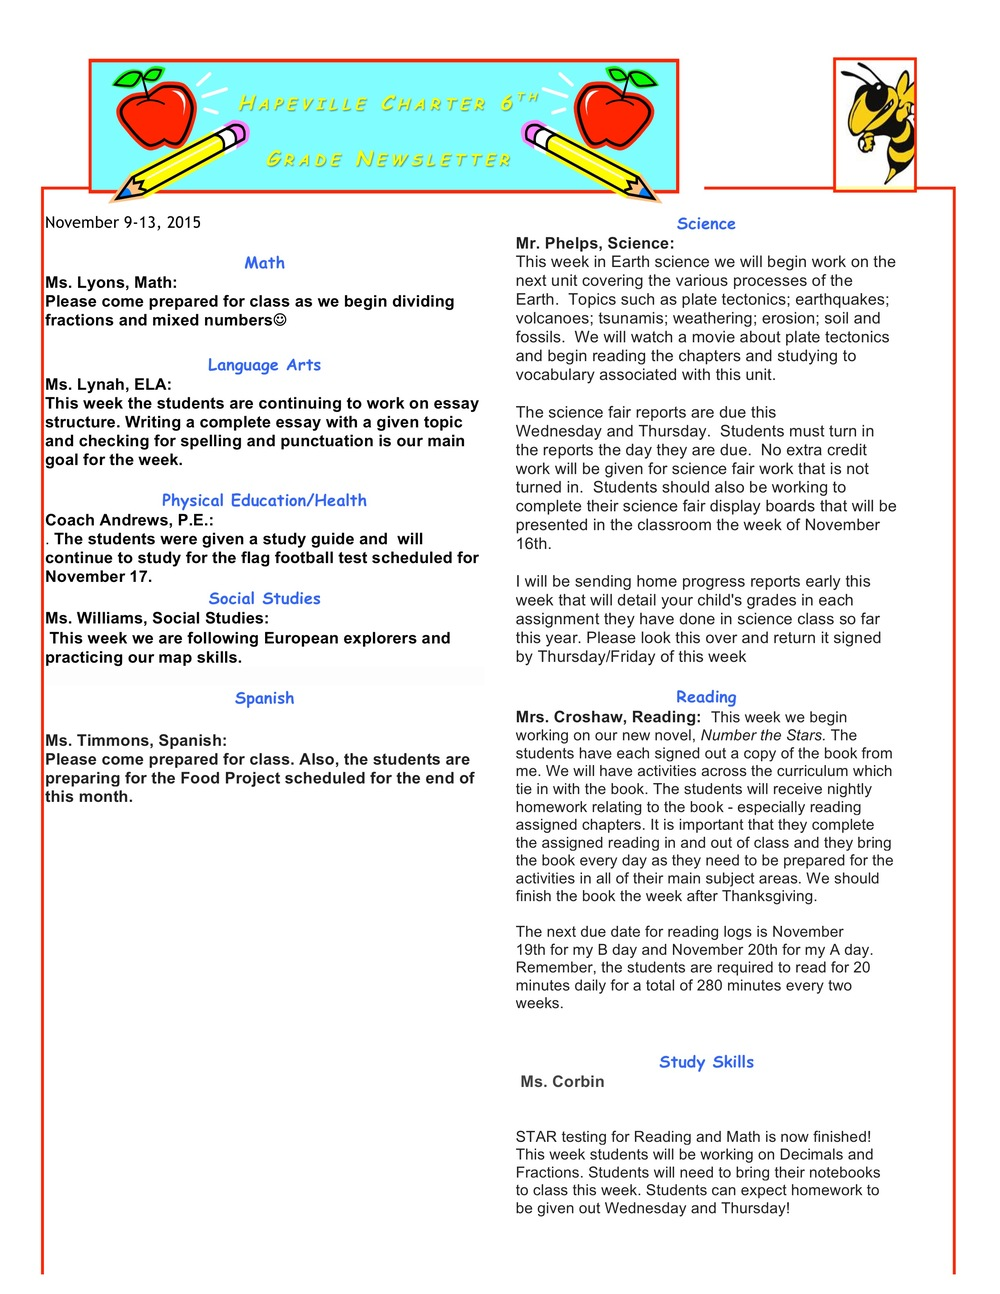 Newsletter Image6th grade Nov 9.jpeg